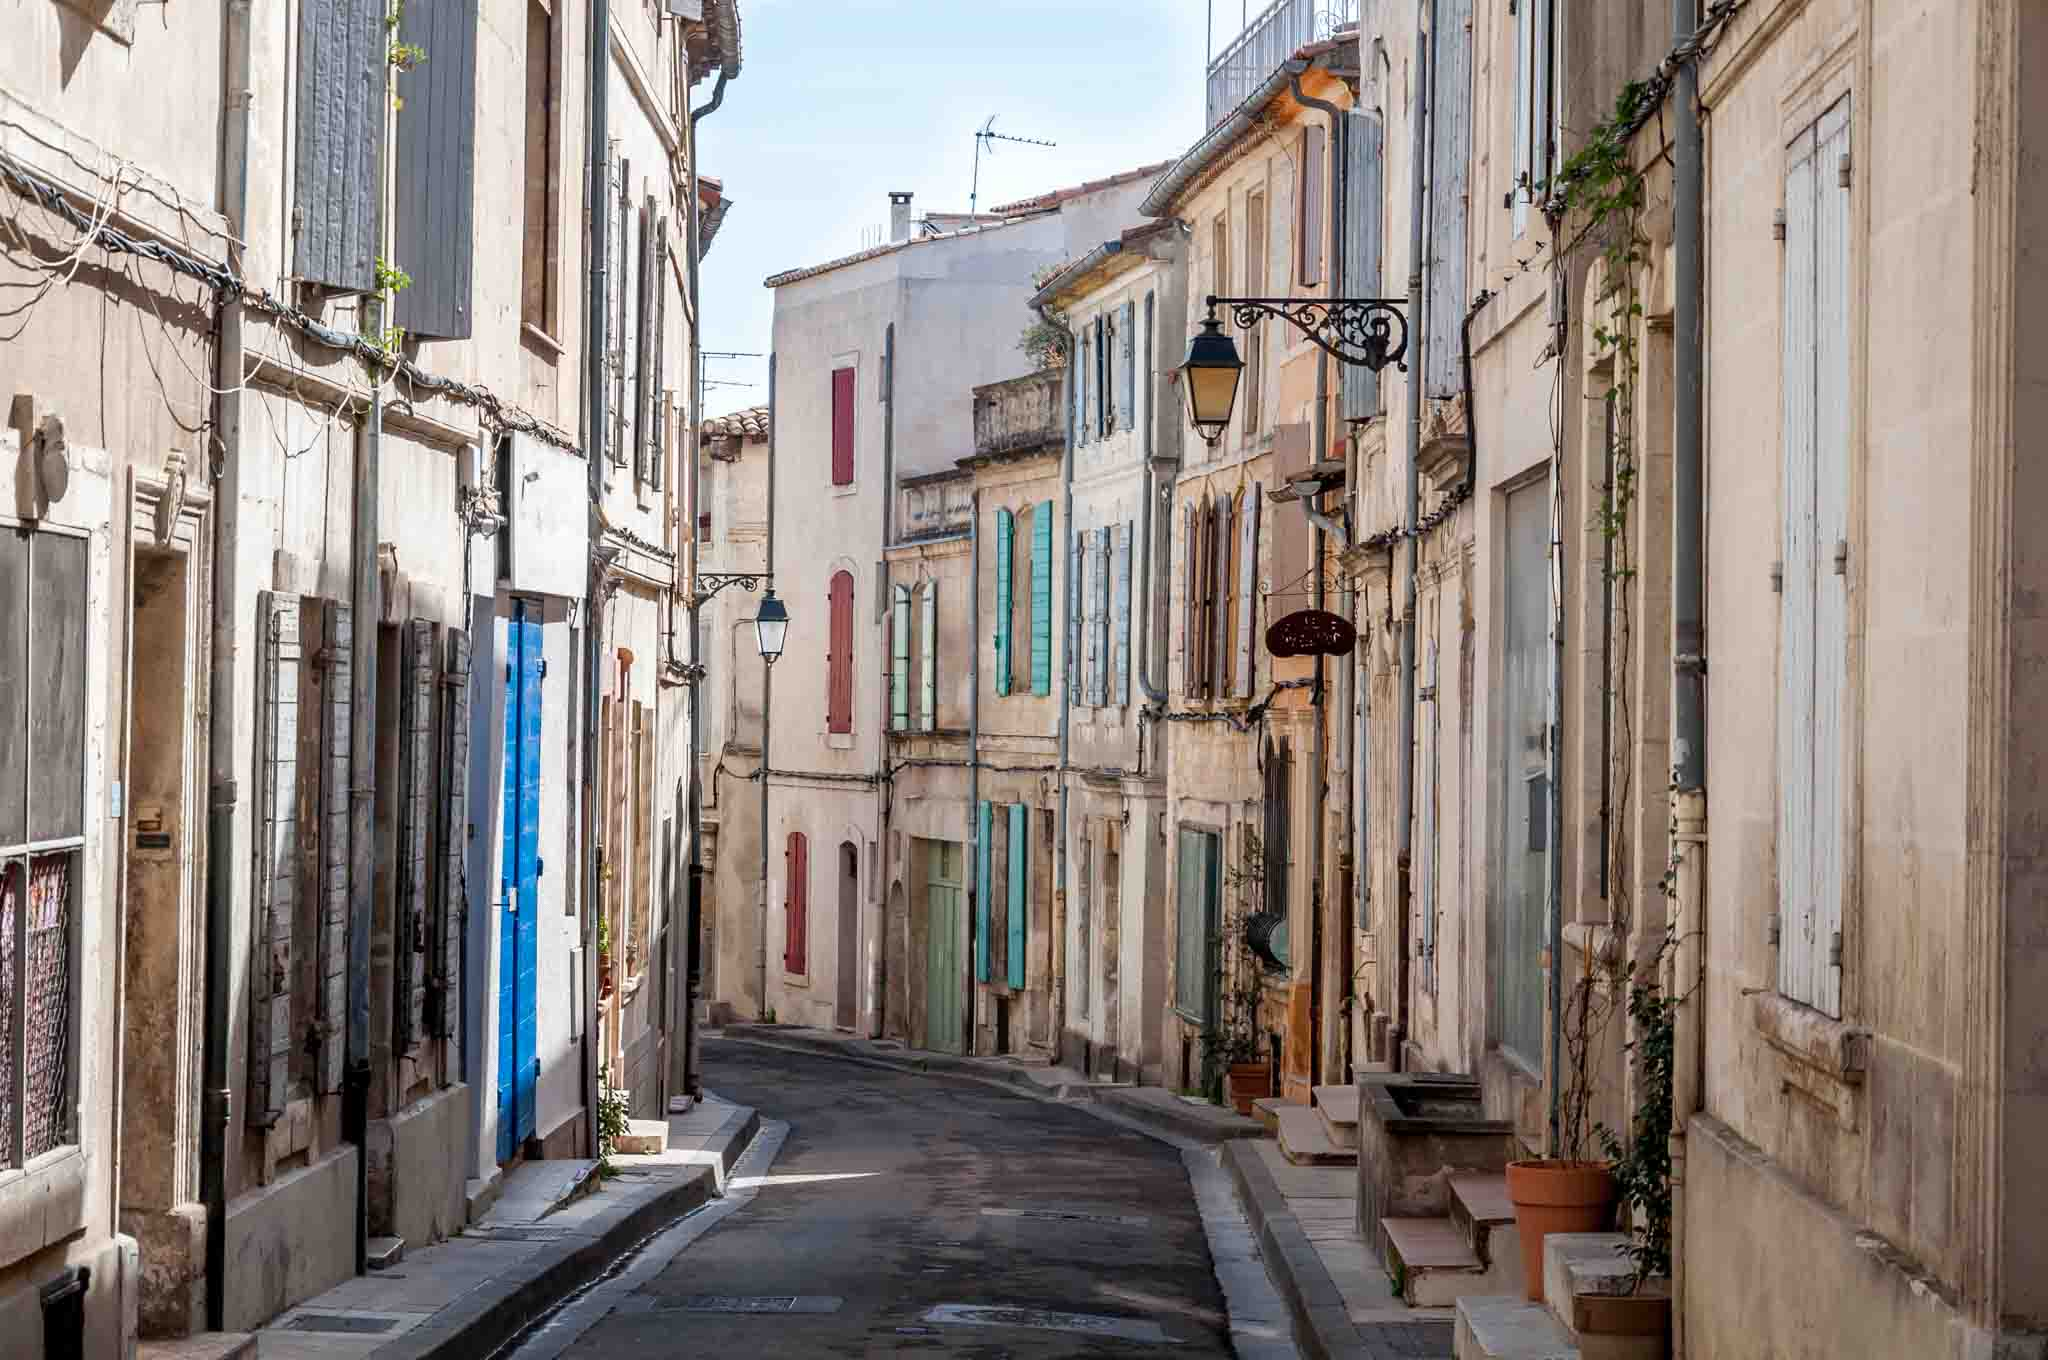 Street full of homes with colorful shutters